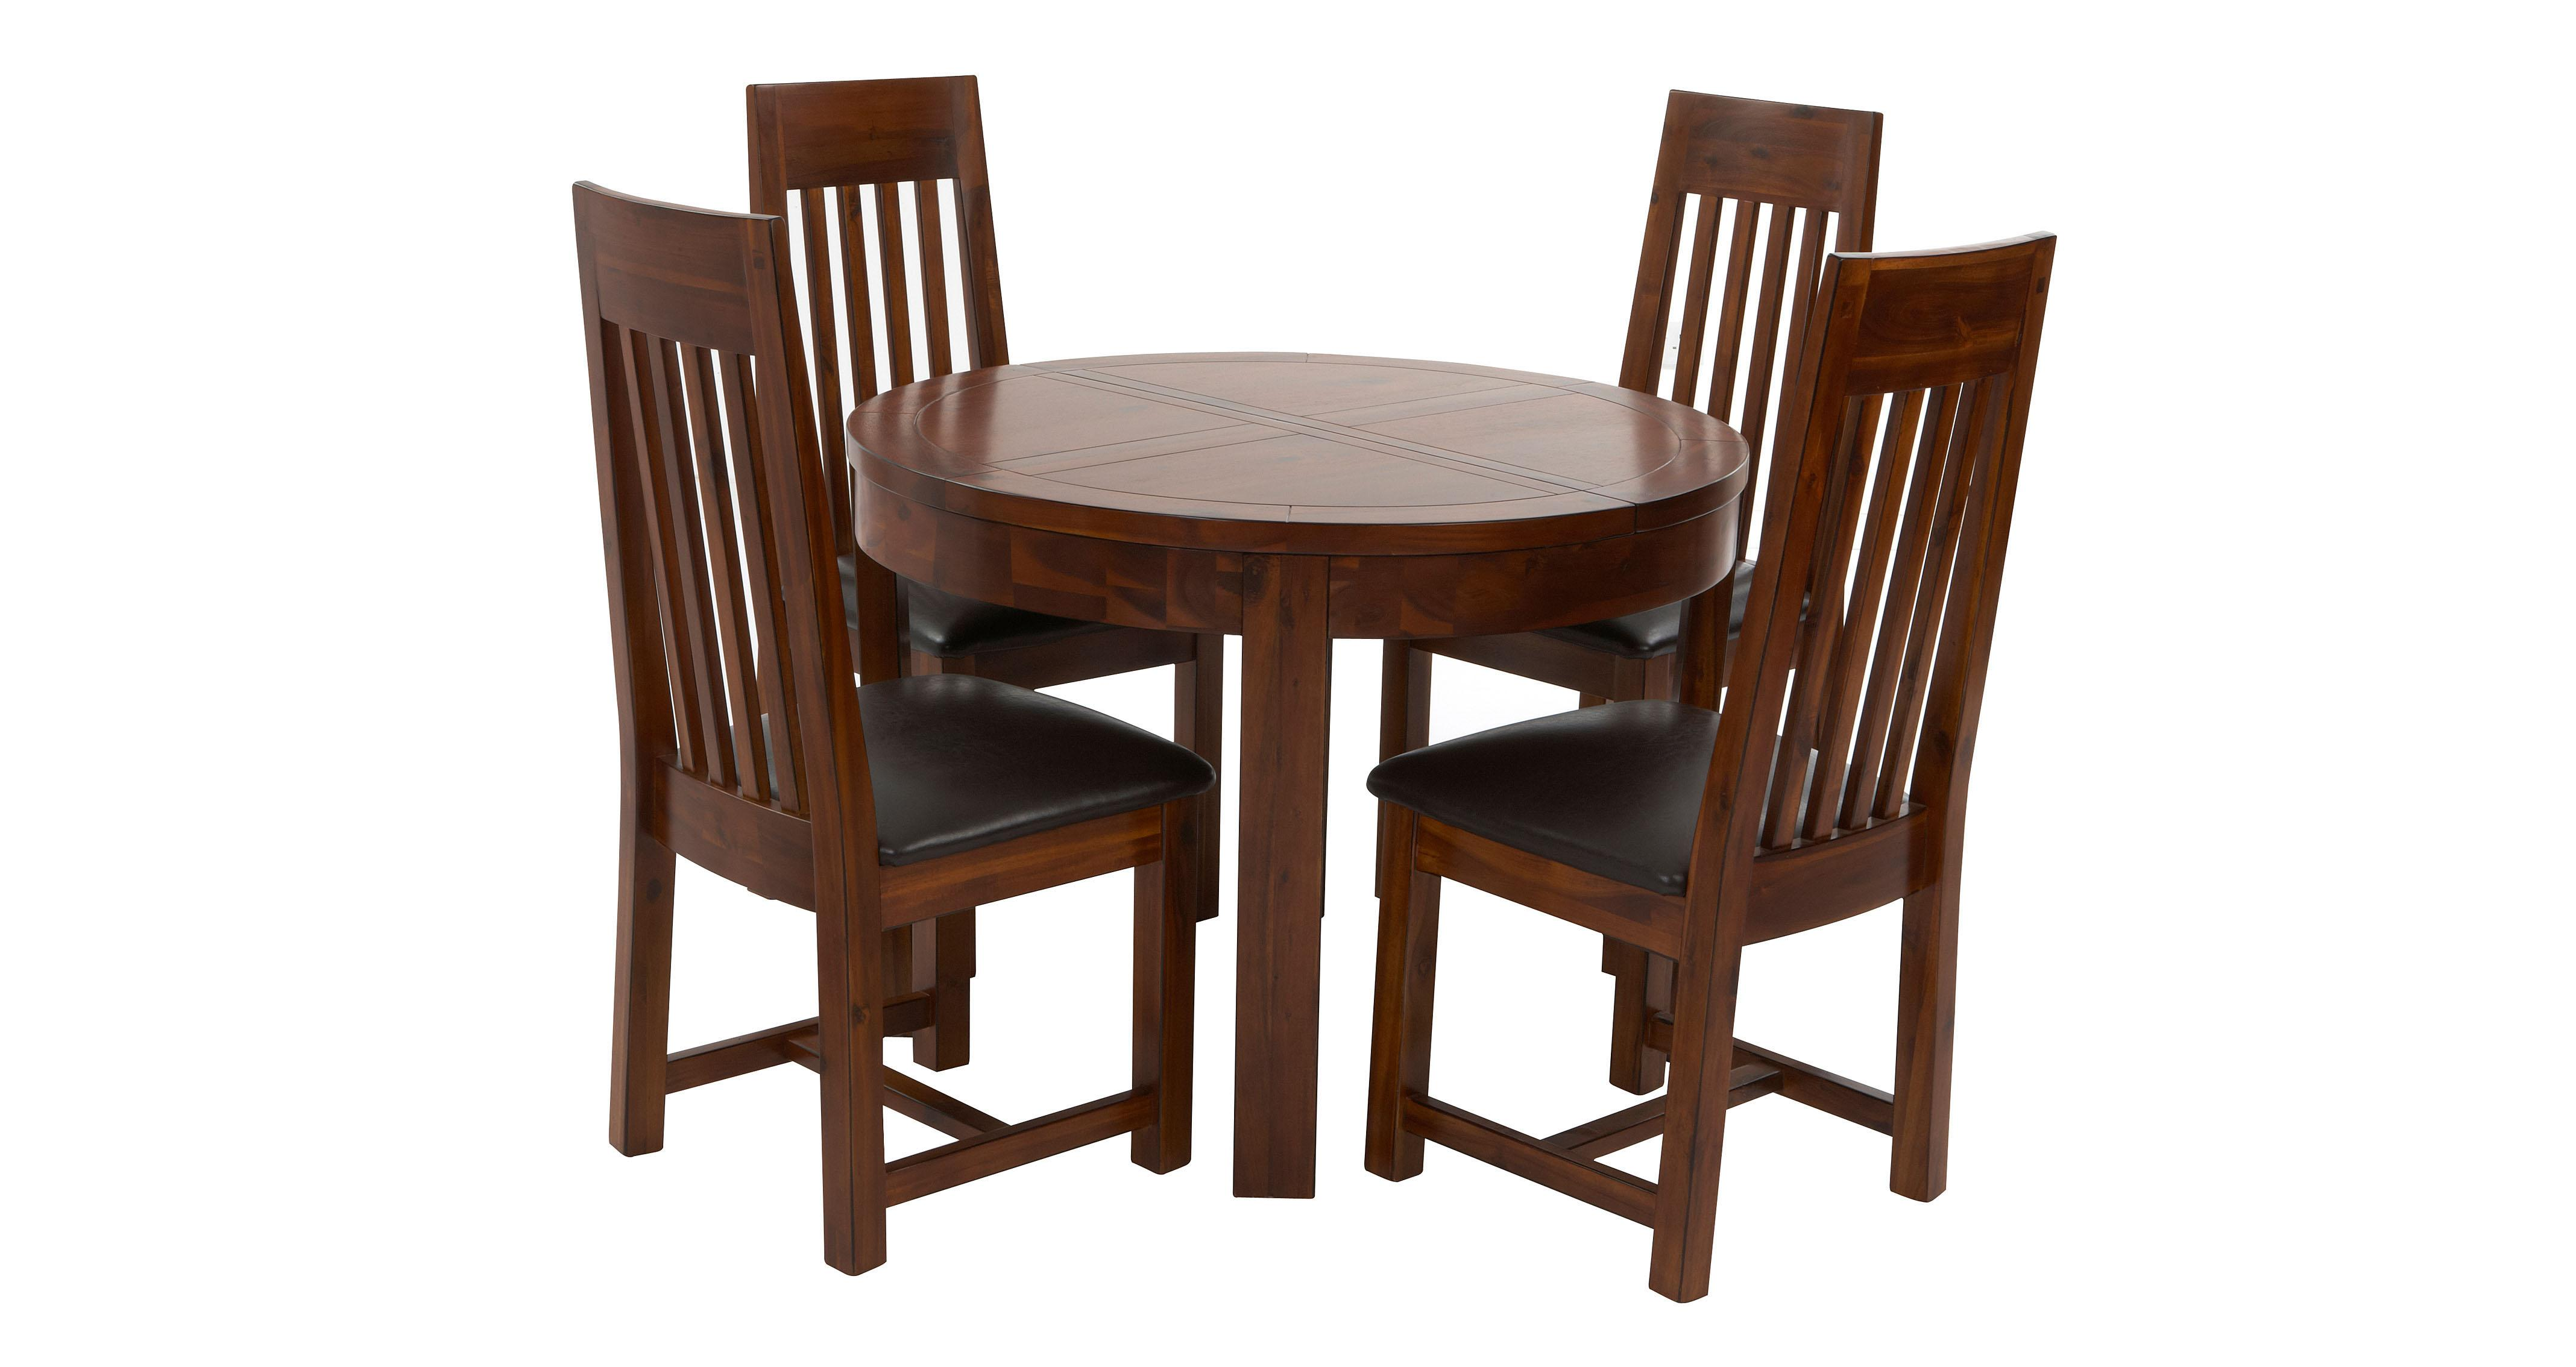 Shiraz Round Extending Dining Table Set of 4 Slat Back Chairs